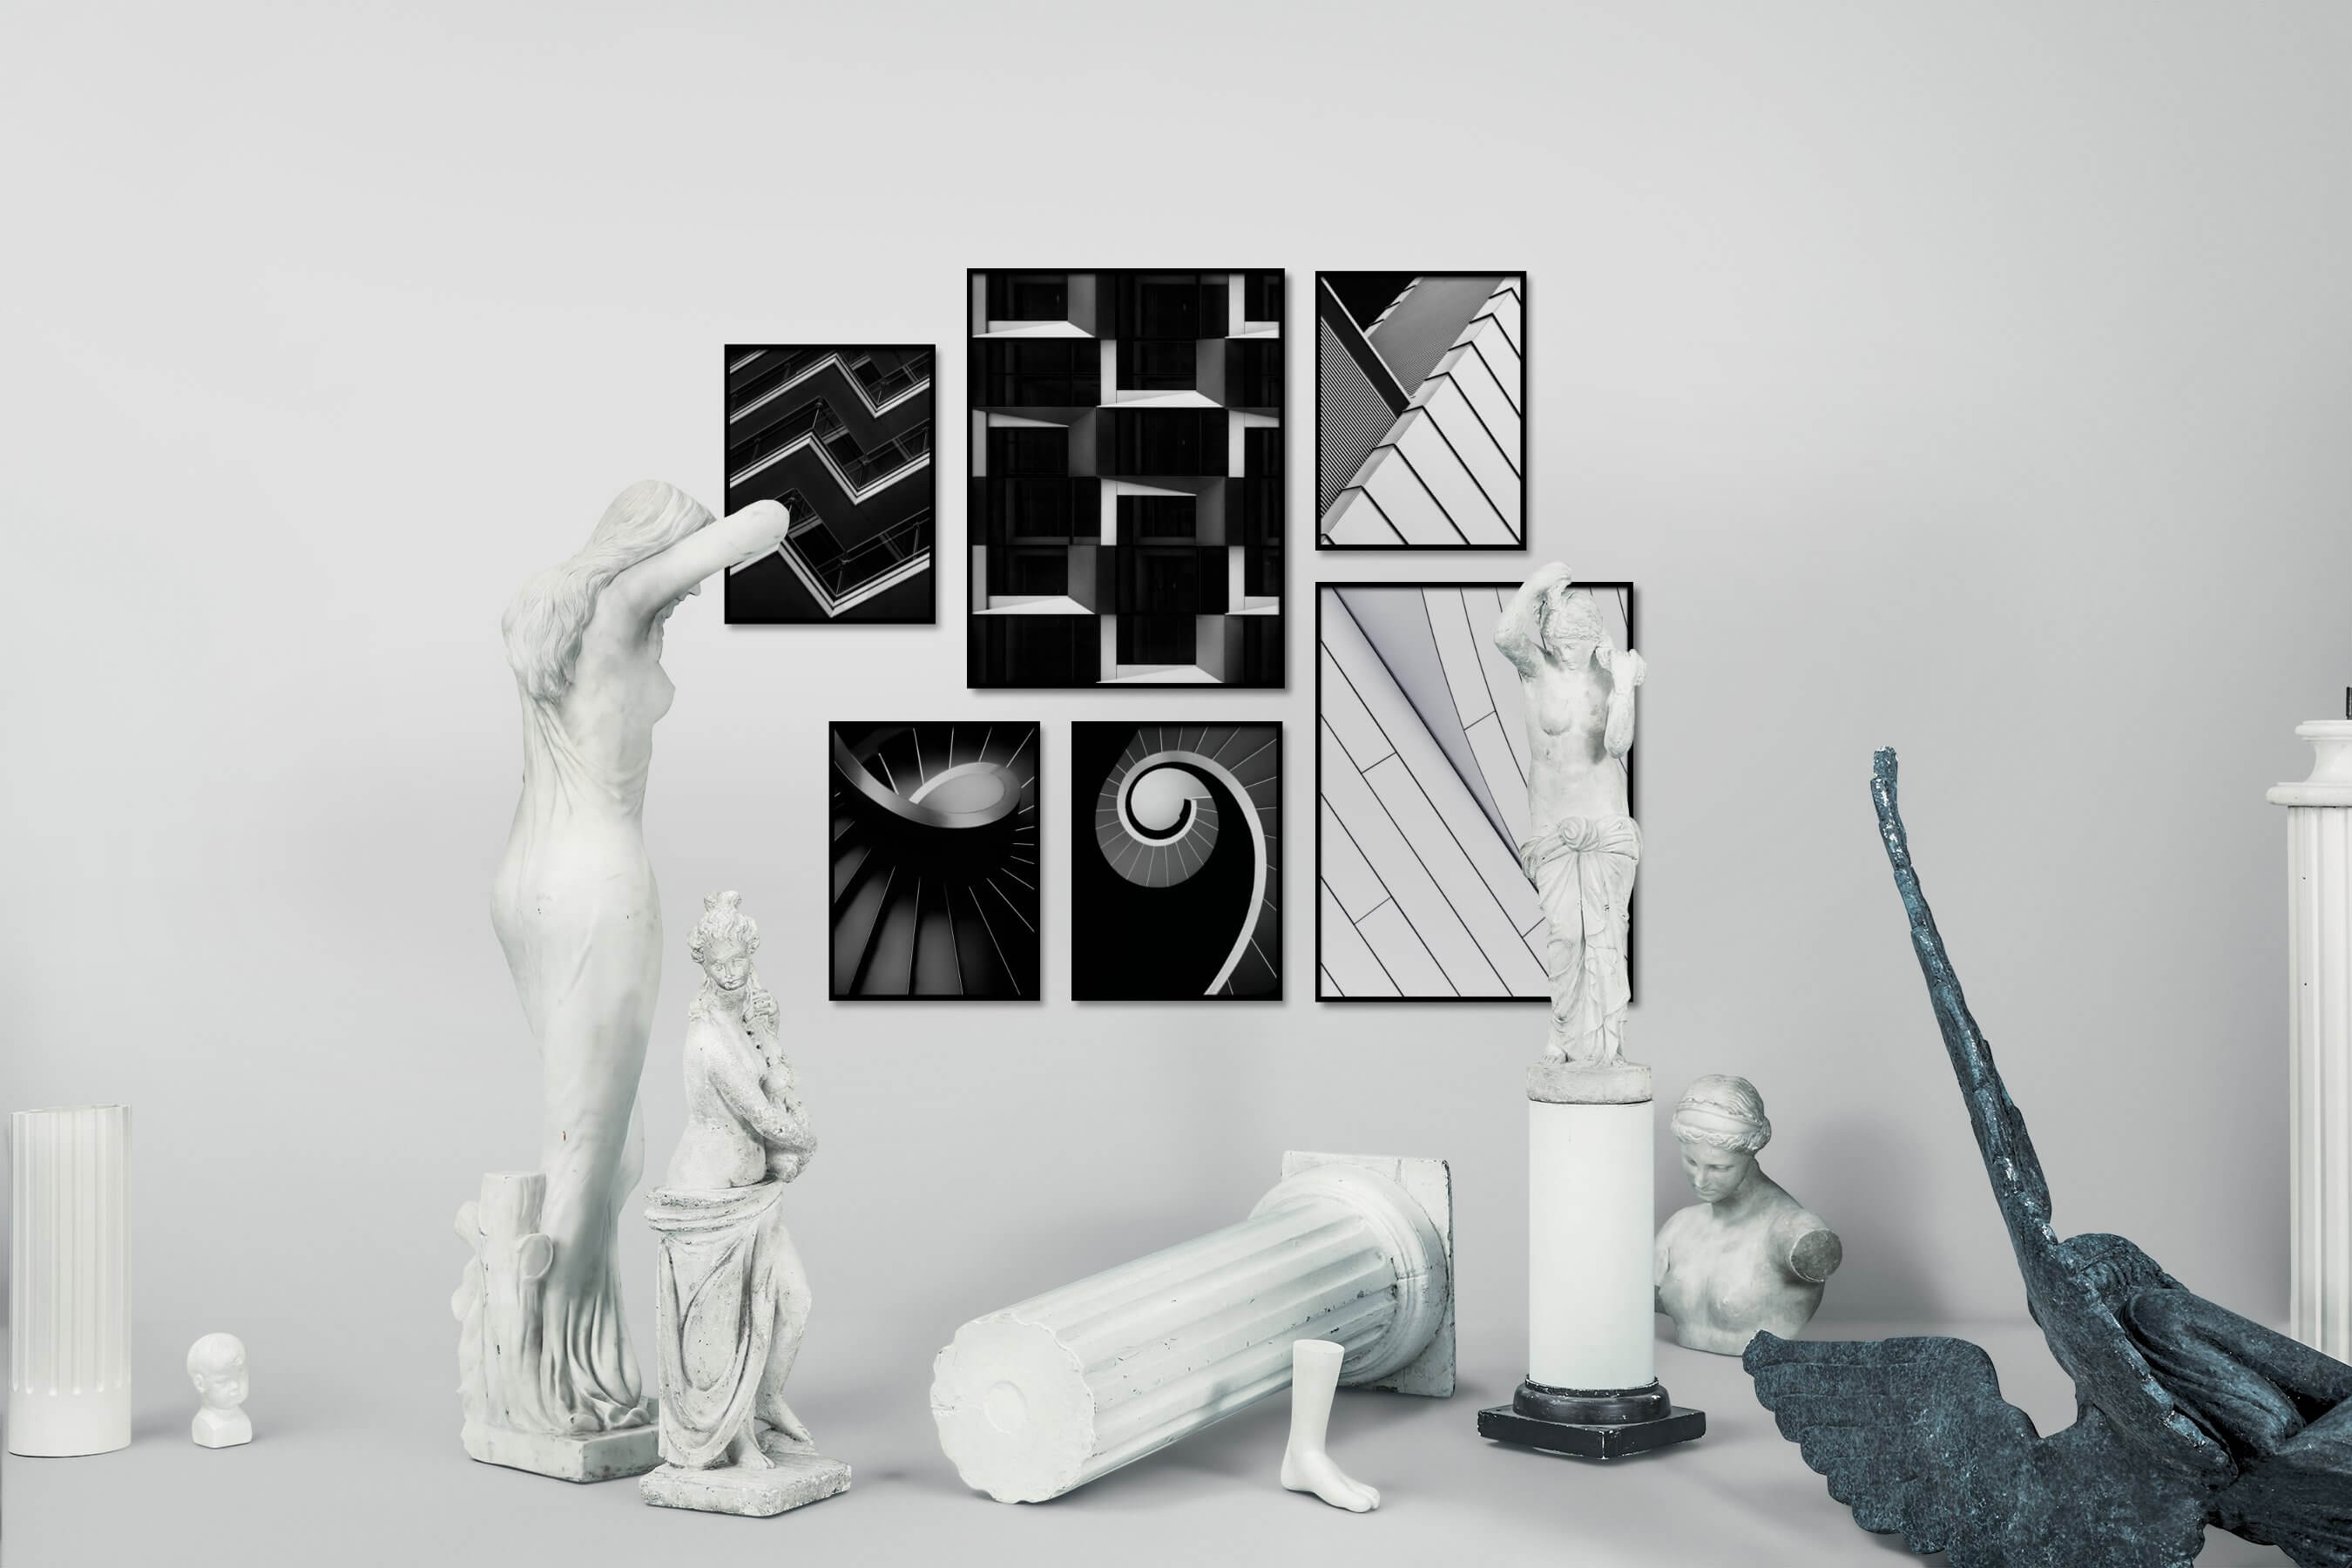 Gallery wall idea with six framed pictures arranged on a wall depicting Black & White, For the Moderate, City Life, Dark Tones, For the Minimalist, and Bright Tones